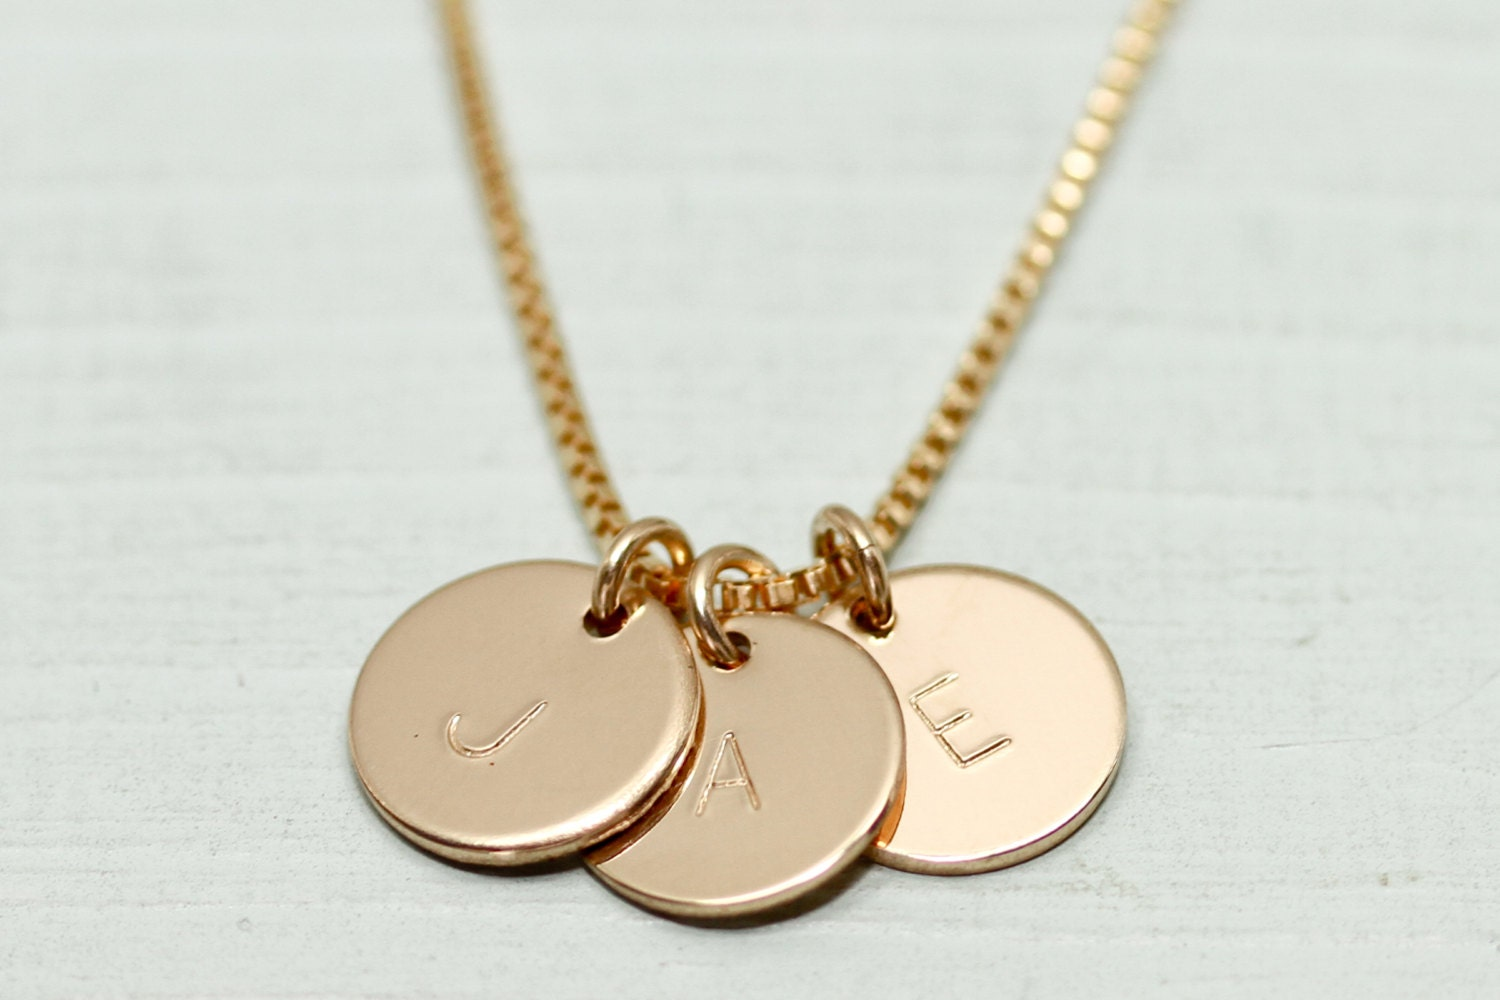 gold disc necklace dainty gold necklace initial necklace